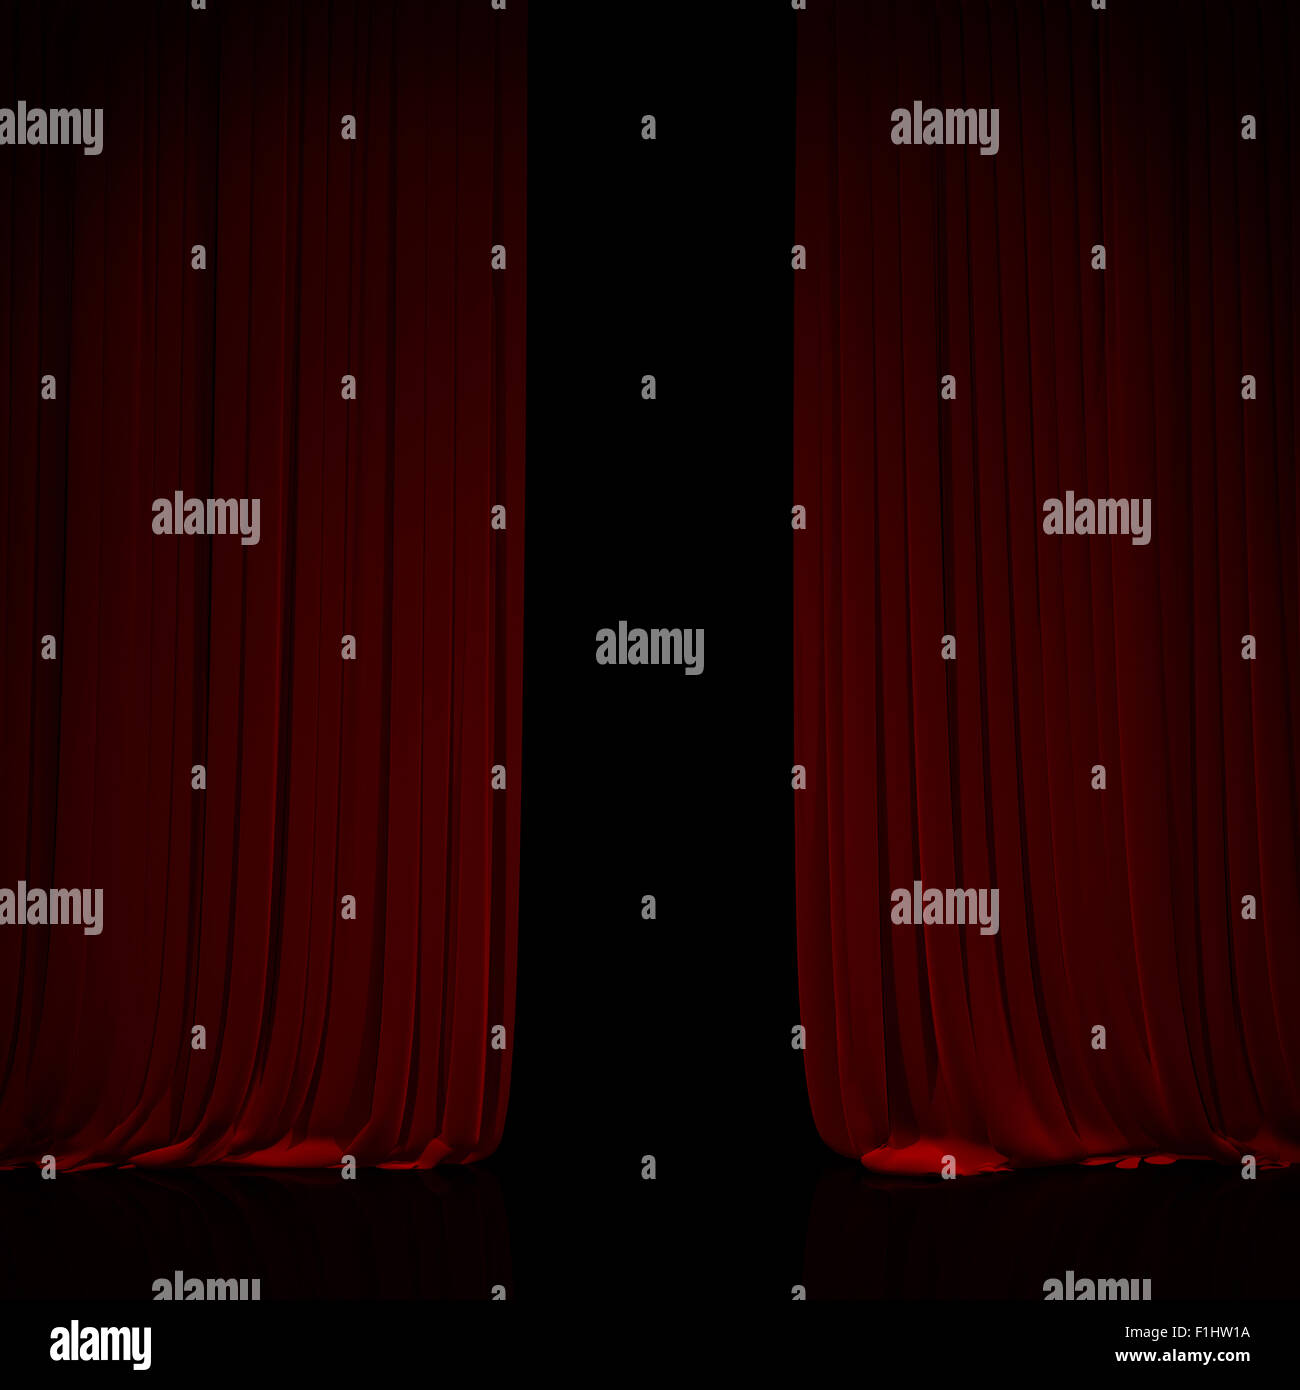 Opening and closing red curtain stock animation royalty free stock - Stock Photo Opening Red Curtain On Theater Or Cinema Stage